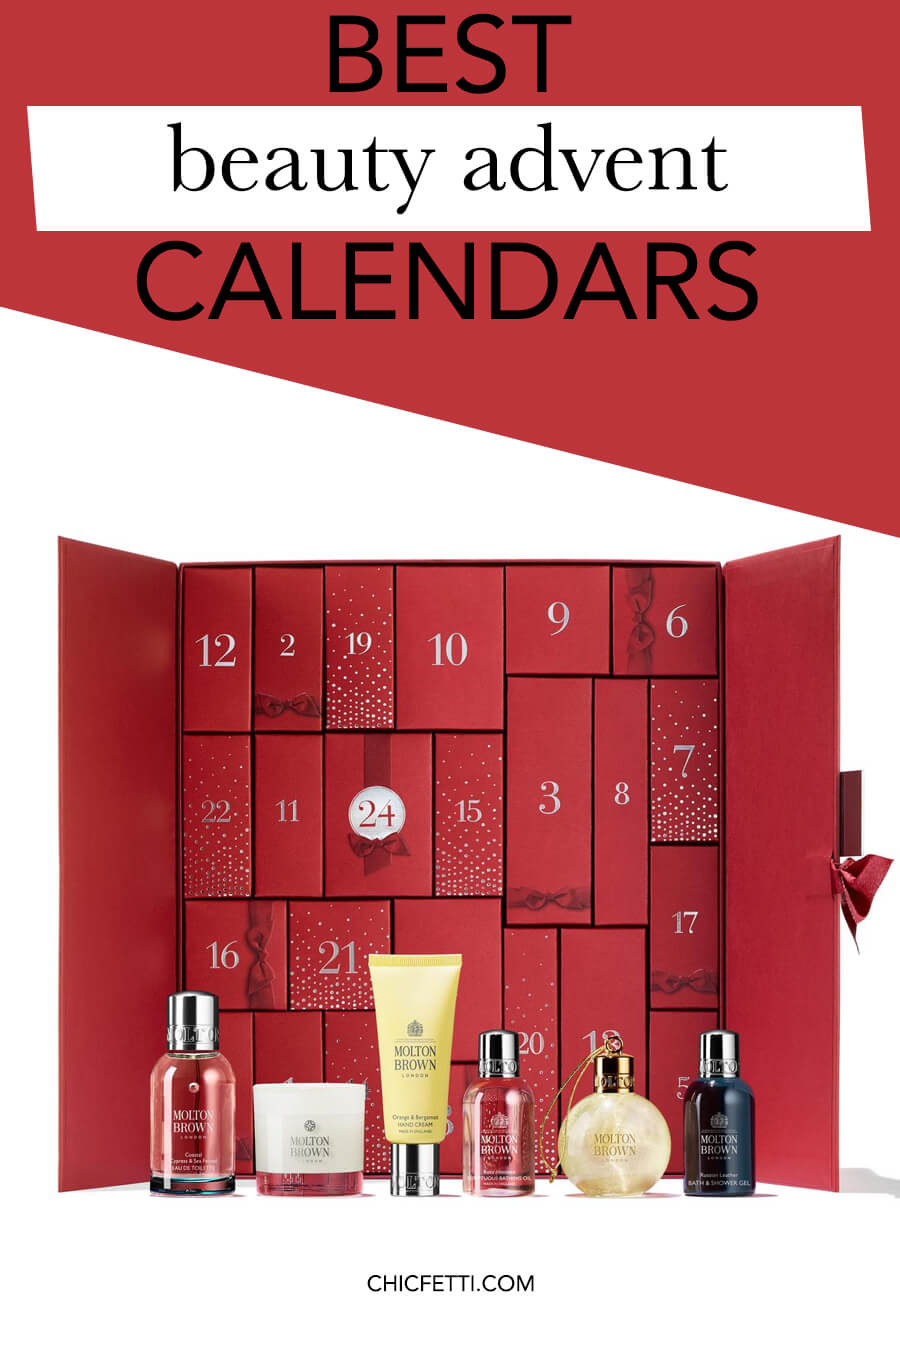 Best beauty advent calendars for Christmas 2018 - count down to Christmas with these gorgeous beauty advent calendars #christmas #christmasideas #christmasgiftideas #advent #adventcalendar #adventcalendars #beautyadvent